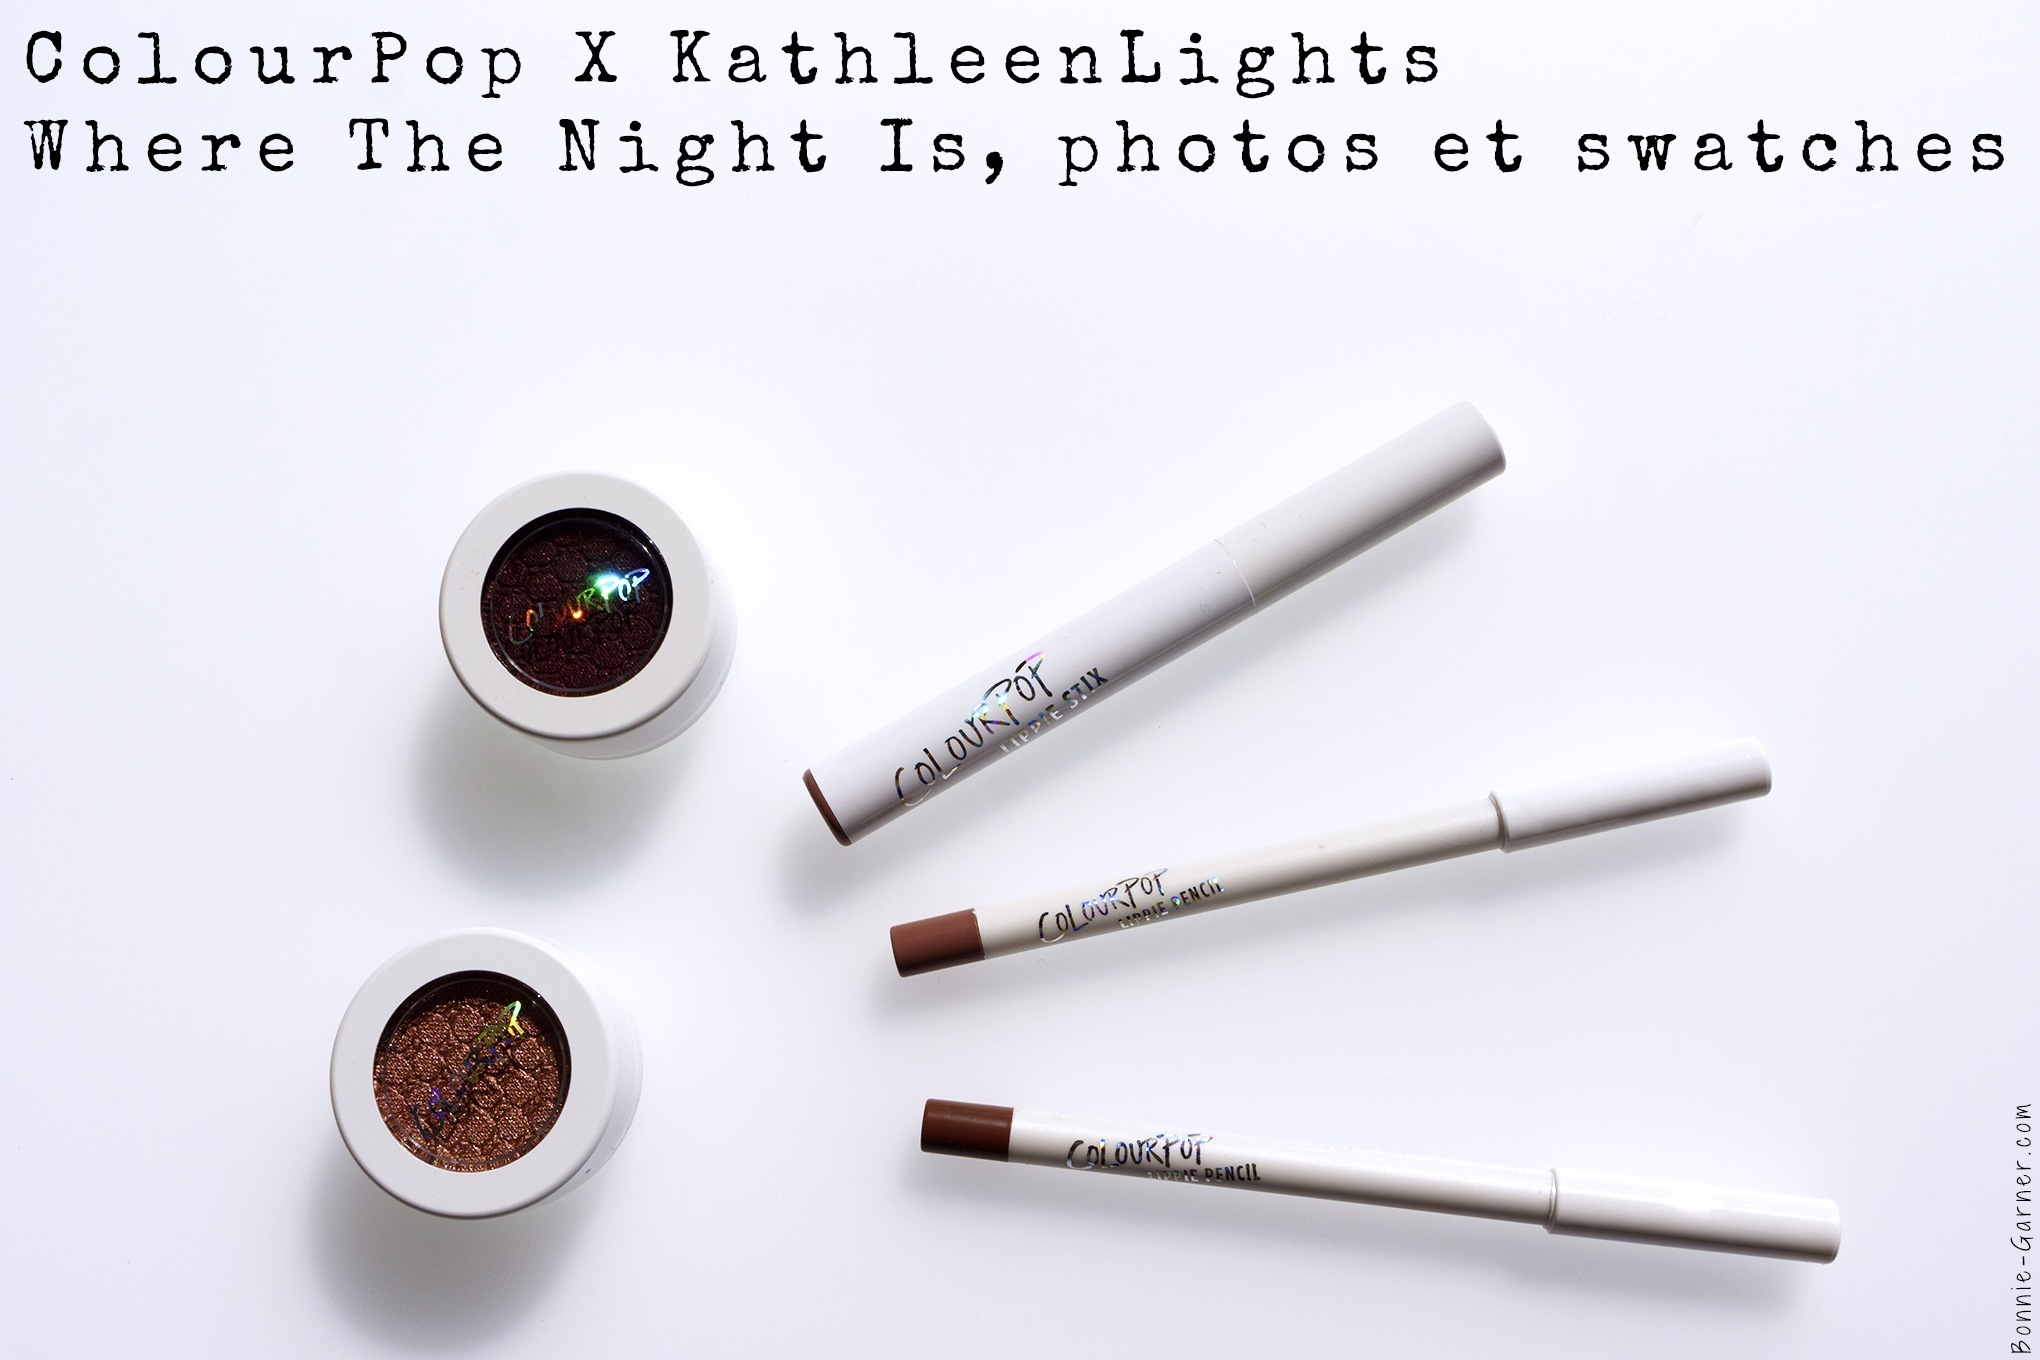 ColourPop X KathleenLights Where The Night Is, photos et swatches